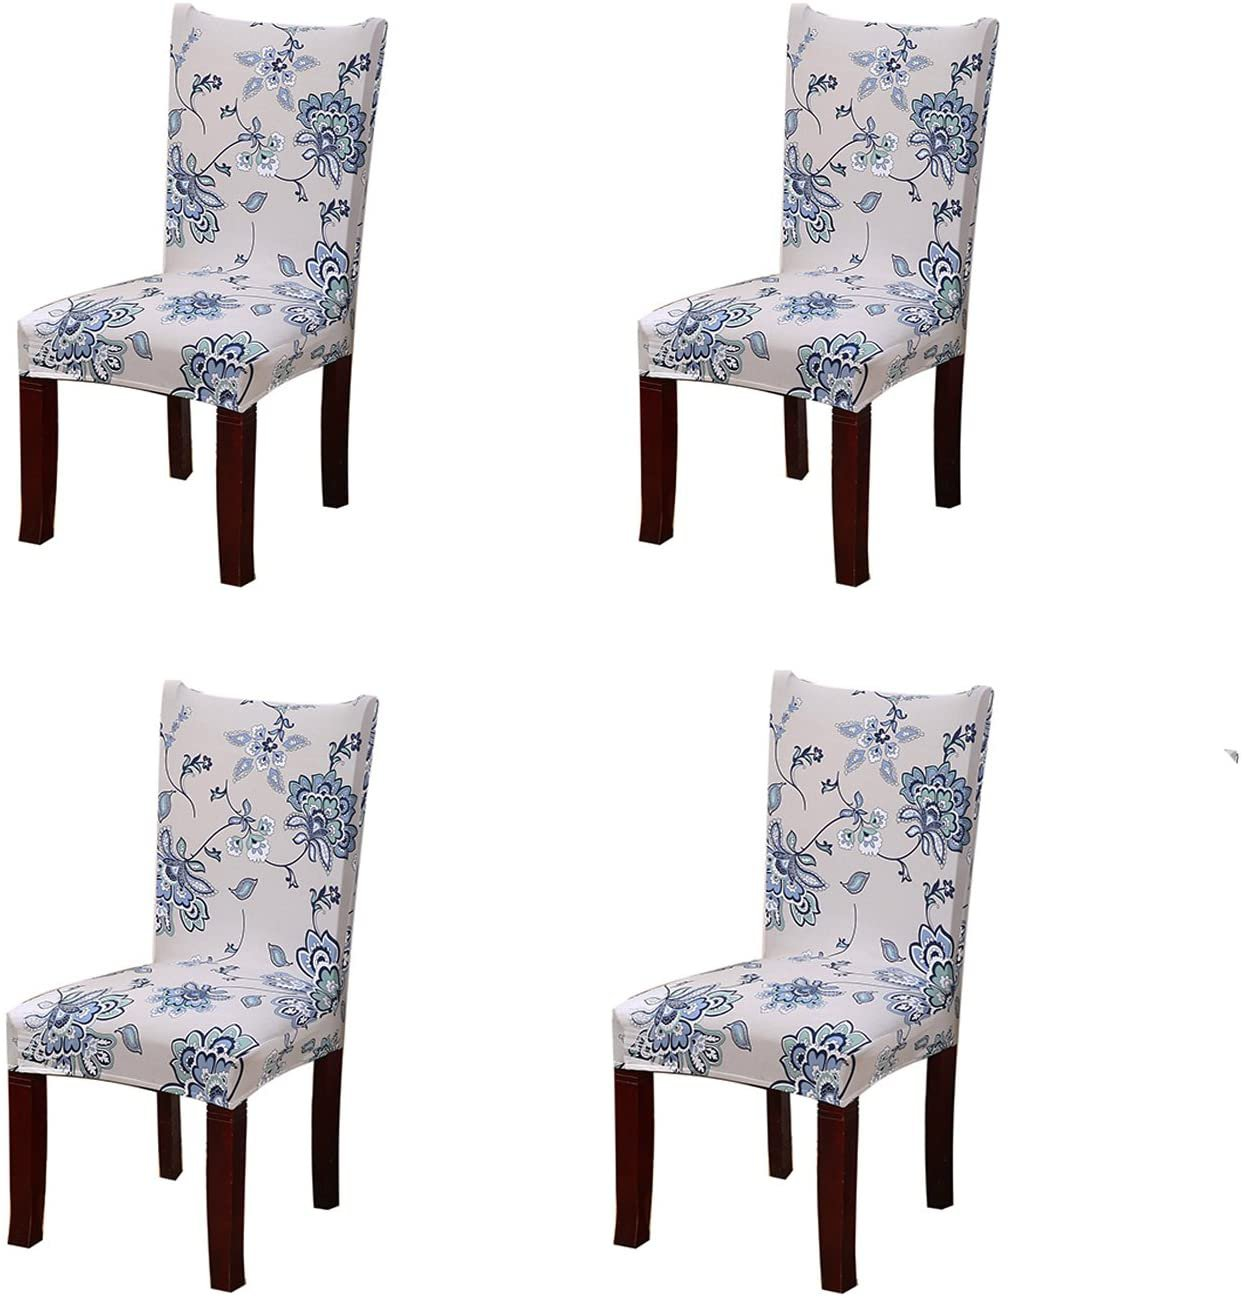 Stretchy Removable Washable Dining Chair Protector Slipcover - White w/Blue Flower